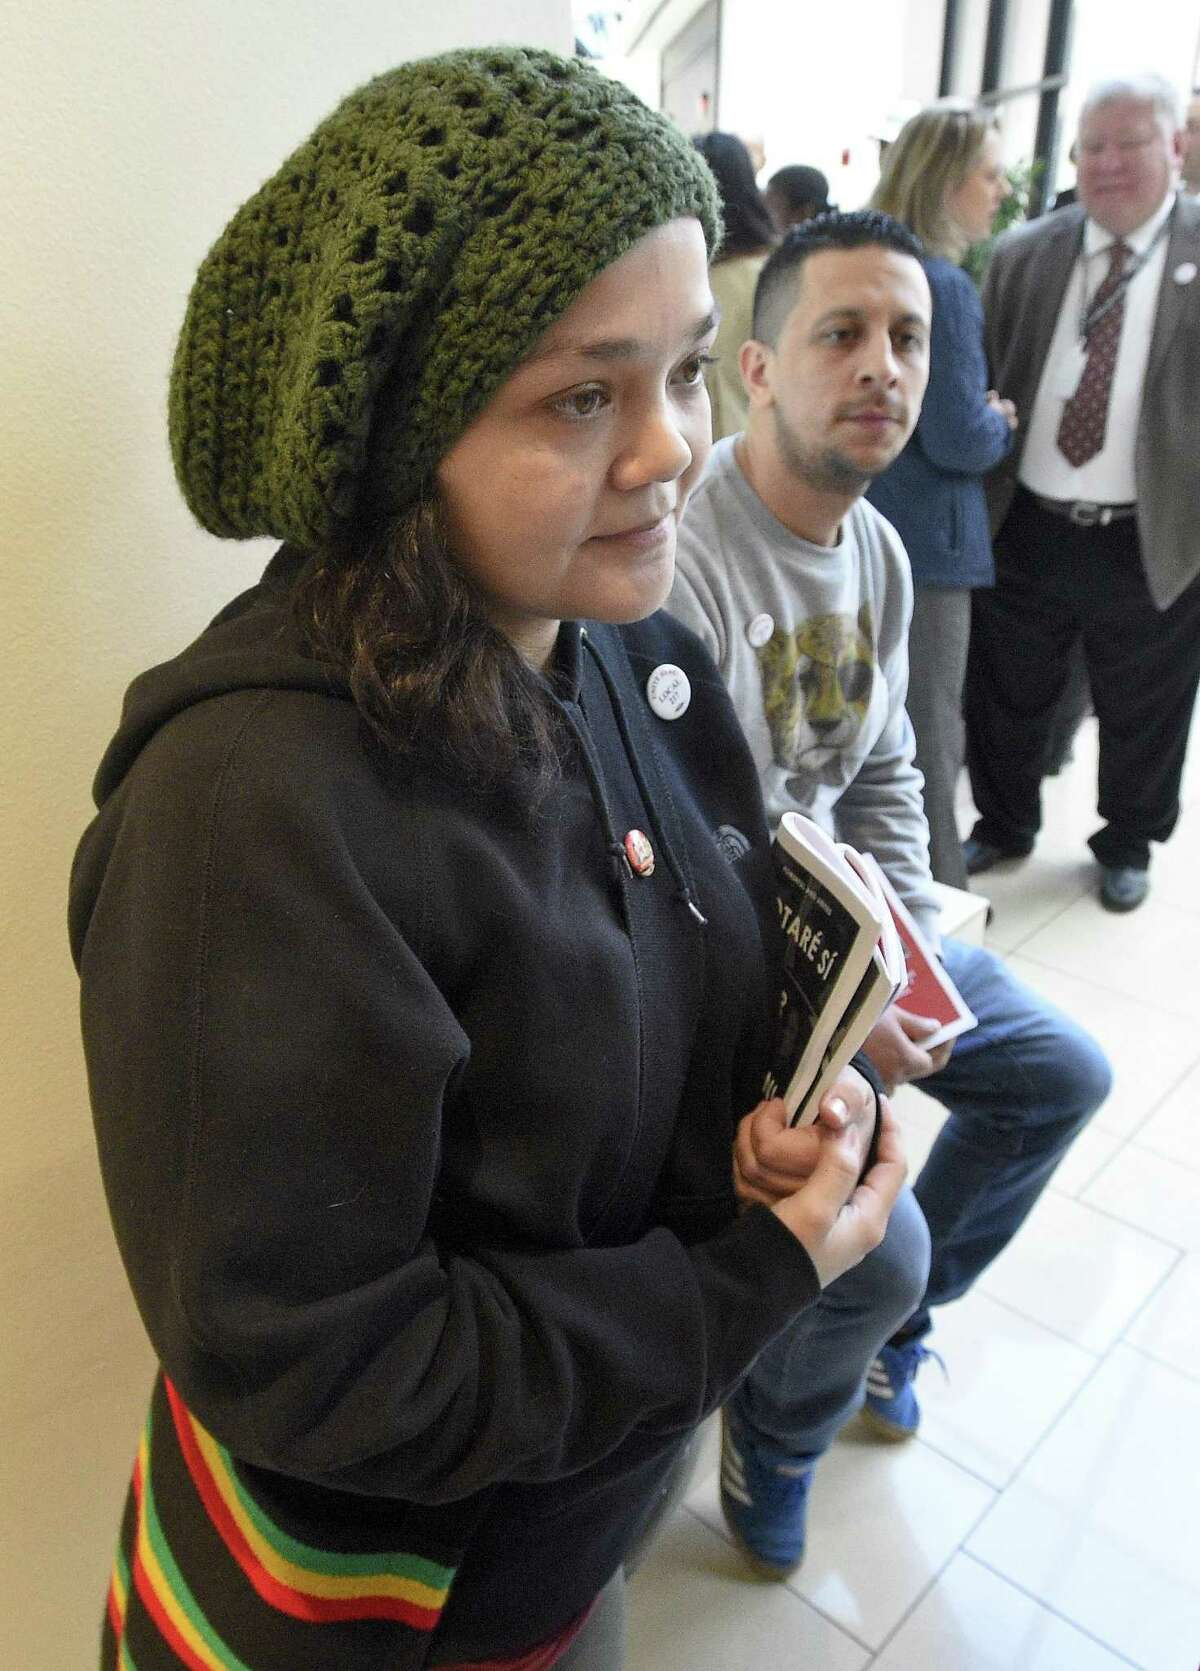 Lupe Martinez of Stamford talks with the media following a rally at the Hilton Stamford Hotel & Executive Meeting Center on Friday, Dec. 1, 2017 in Stamford, Connecticut. Martinez, who works as a Banquet Server and husband Irwin Martinez, a cook, joined with co-workers, city and state officials in support of employees unionizing, a measure that passed on Monday.